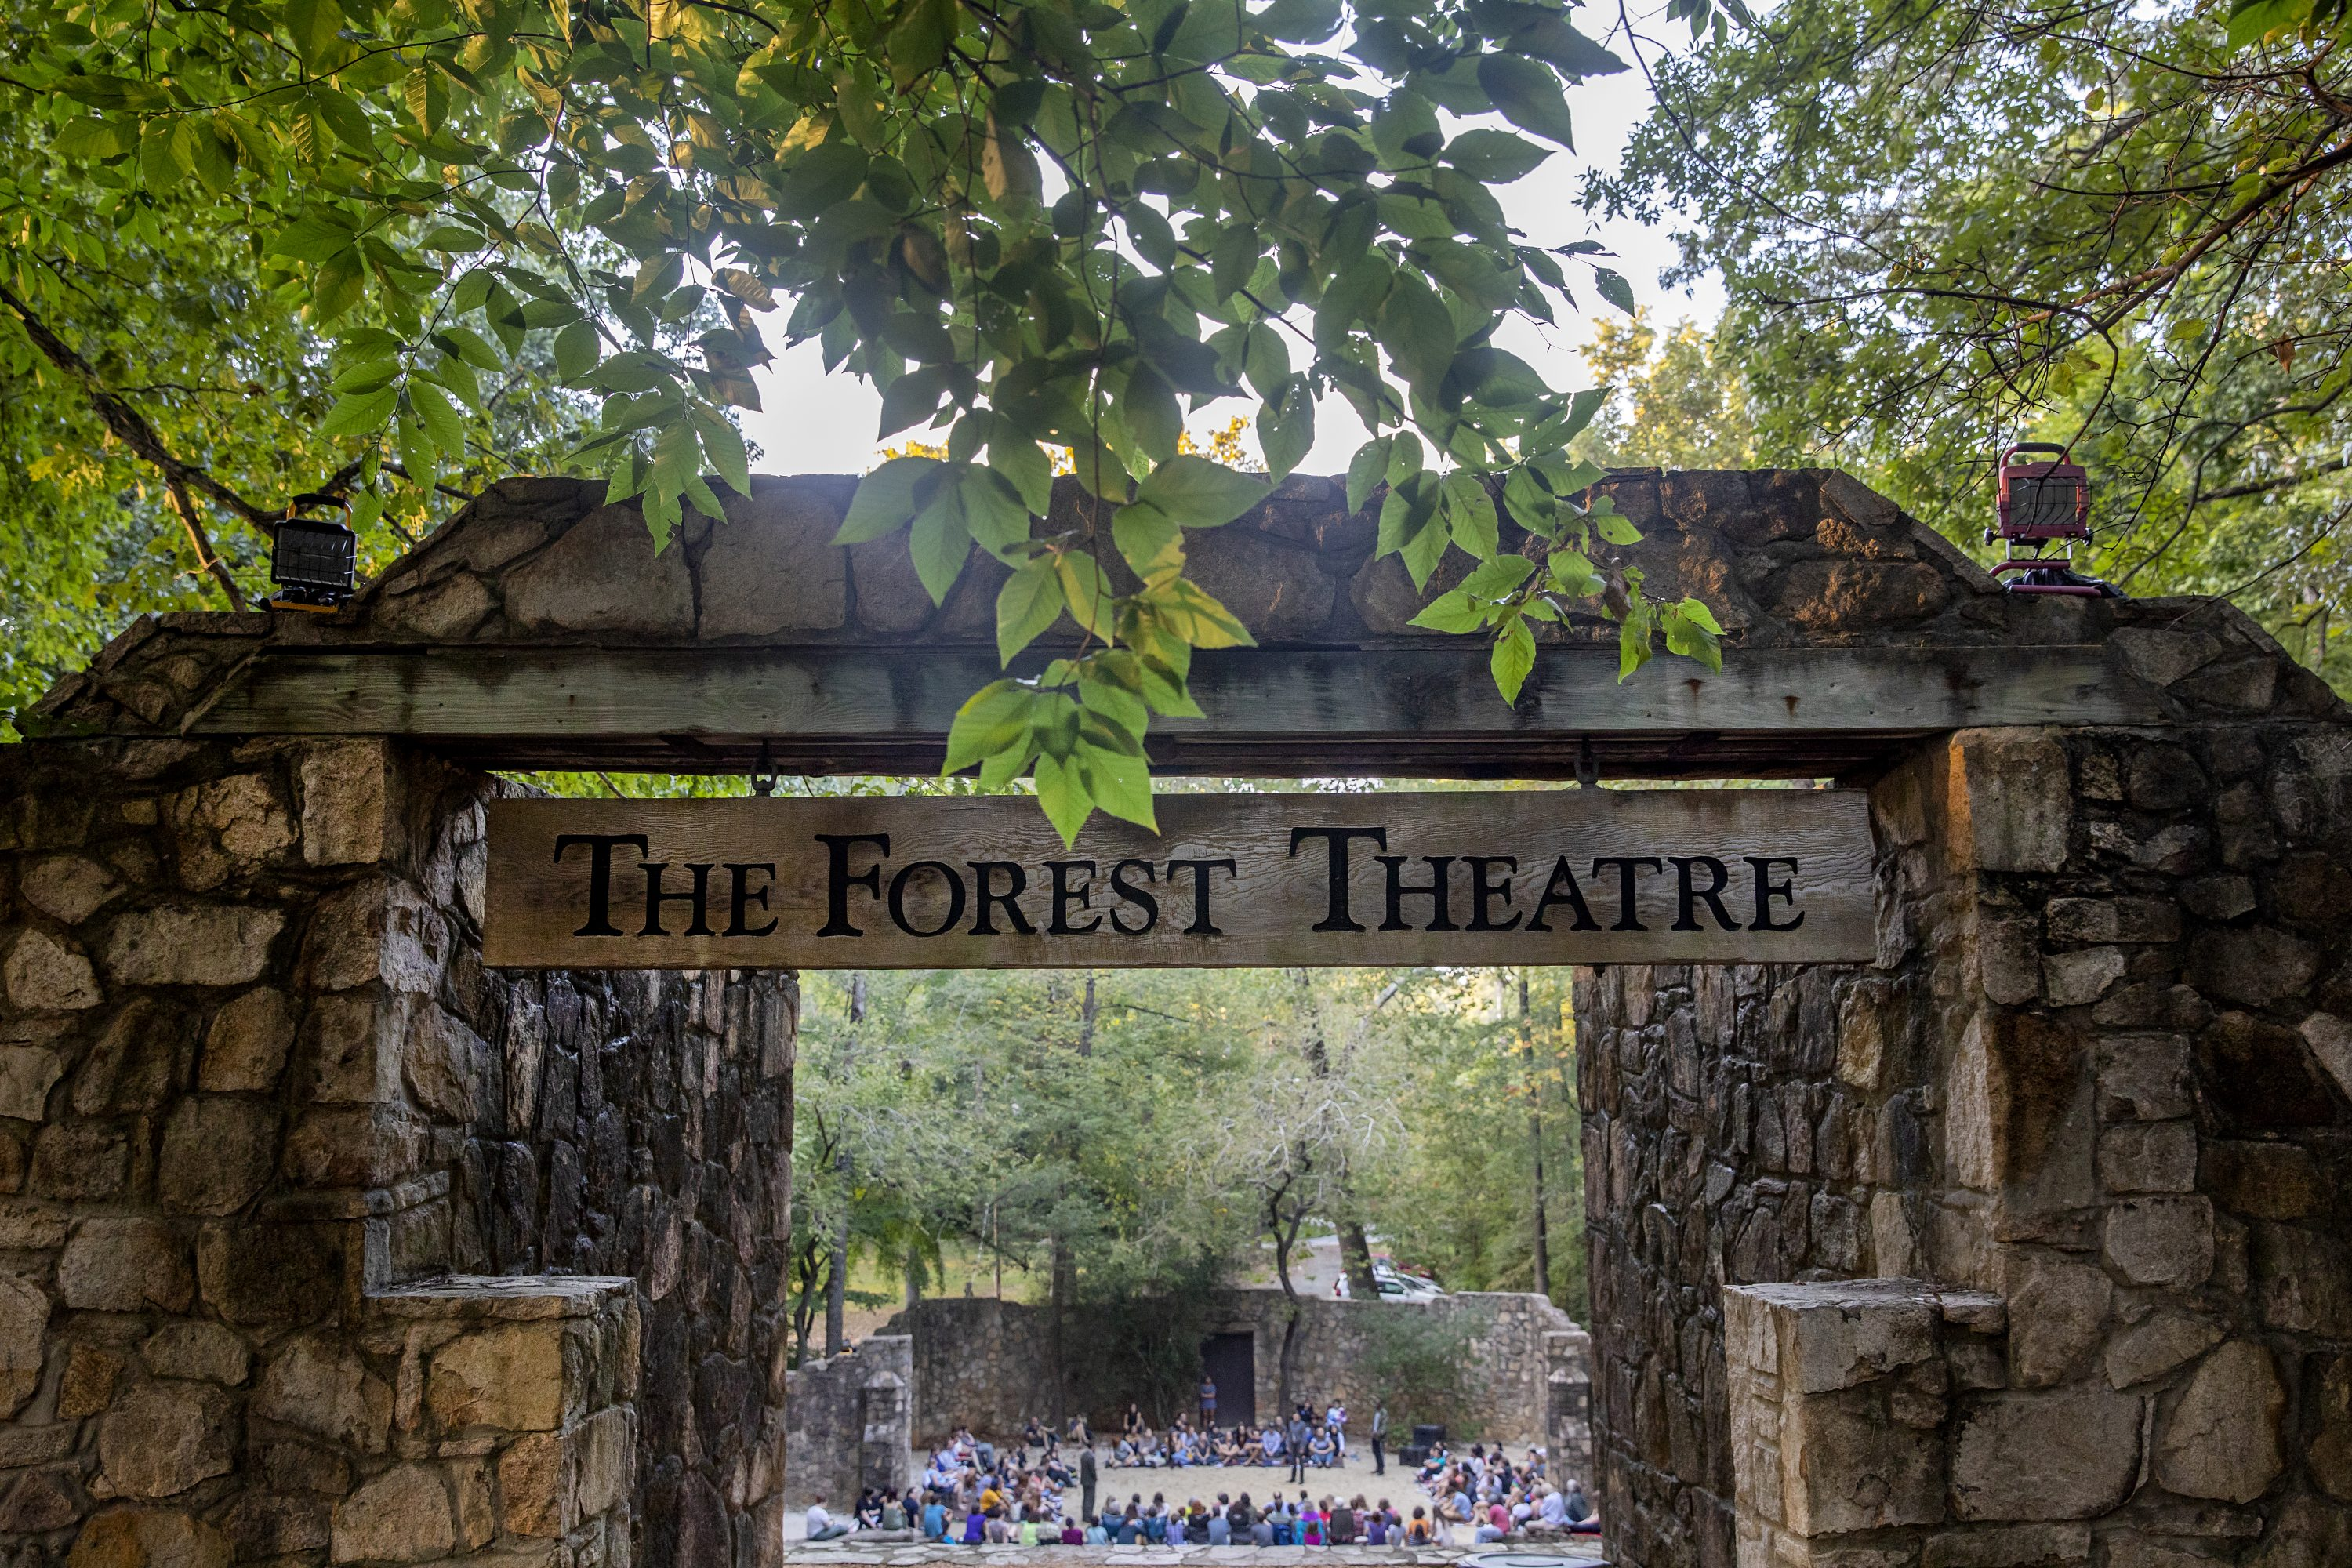 entrance to Forest Theatre